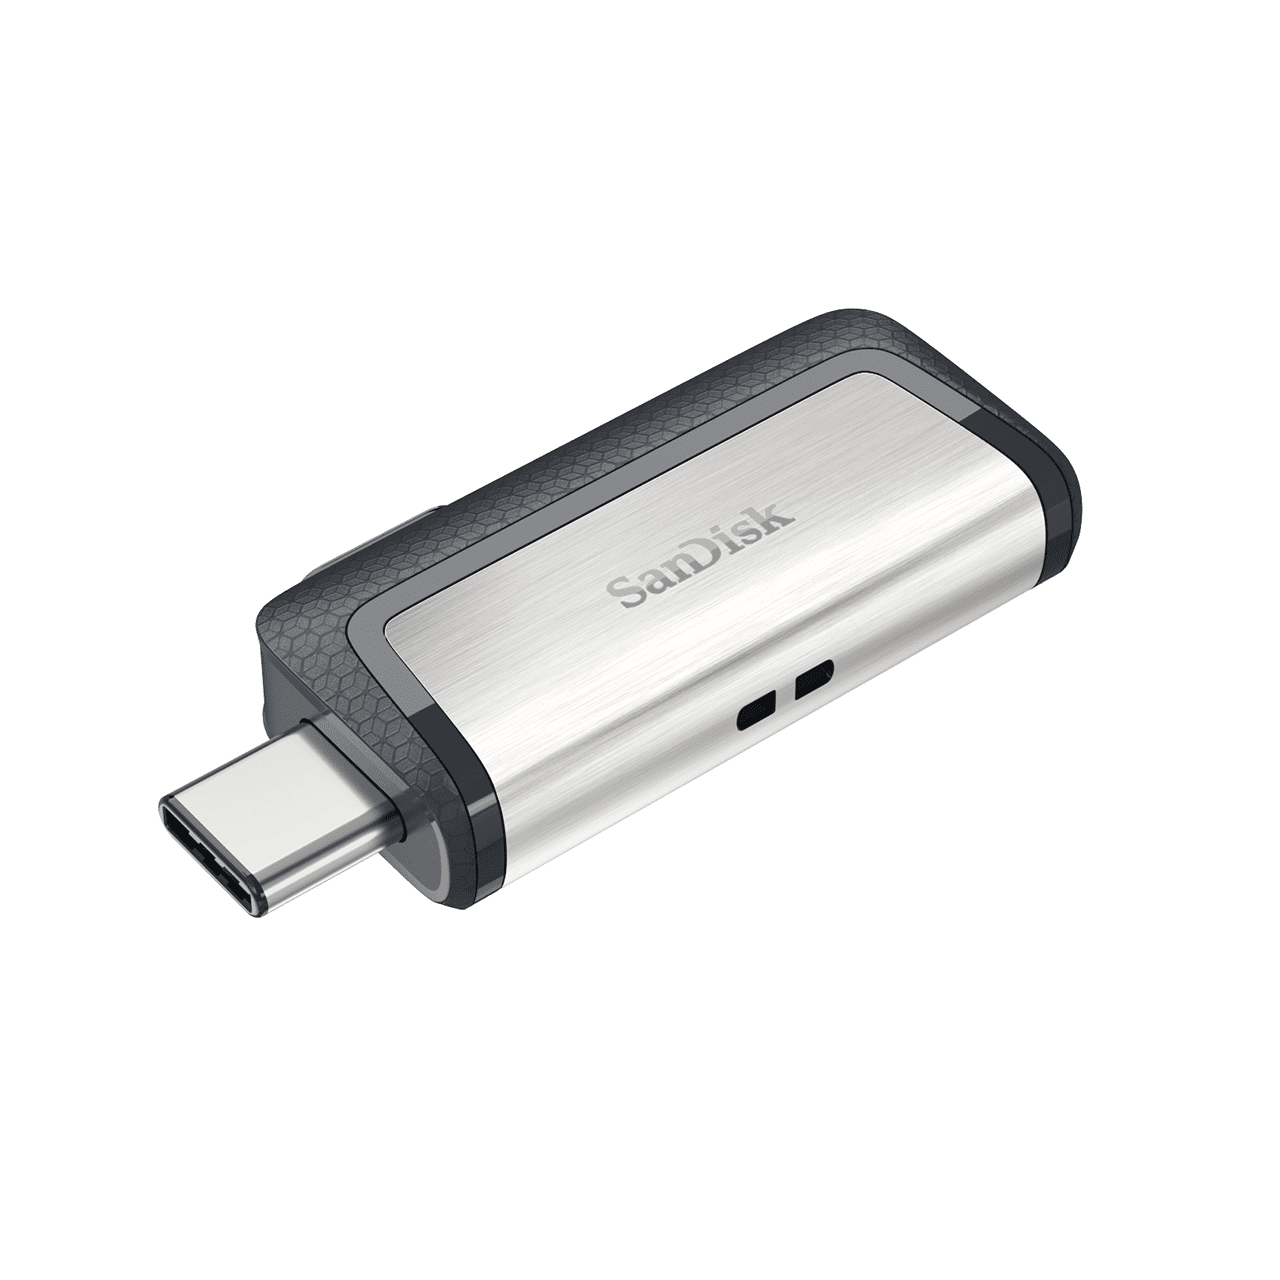 ultra-dual-drive-usb-type-c-flat-type-copen_png_thumb_1280_1280.png